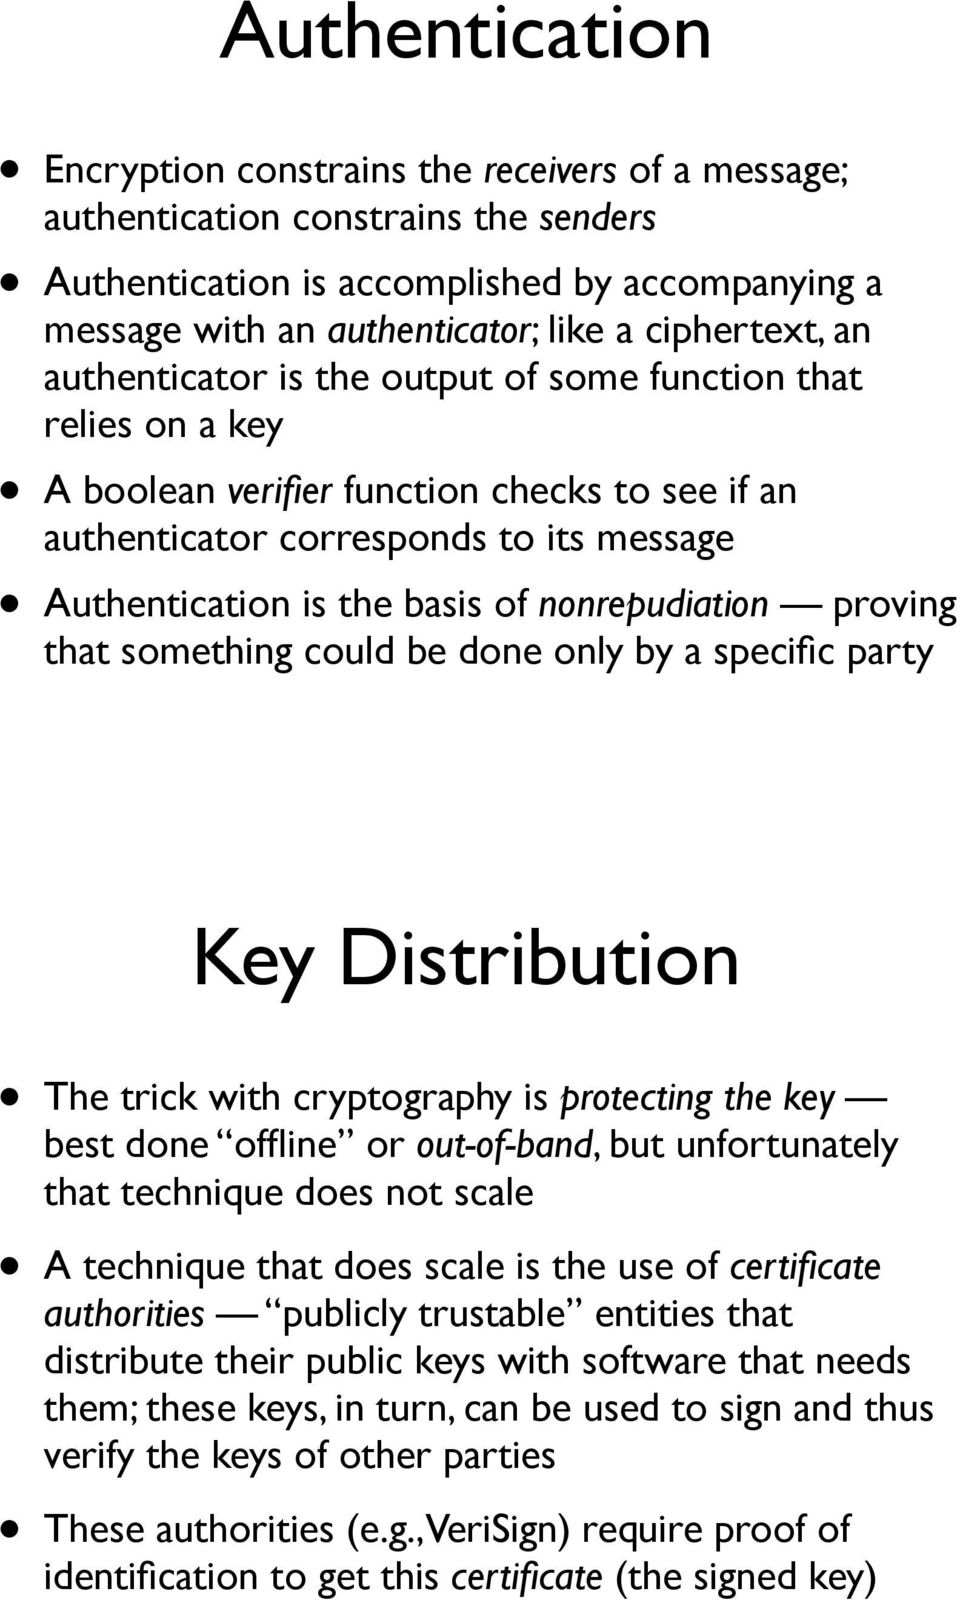 of nonrepudiation proving that something could be done only by a specific party Key Distribution The trick with cryptography is protecting the key best done offline or out-of-band, but unfortunately